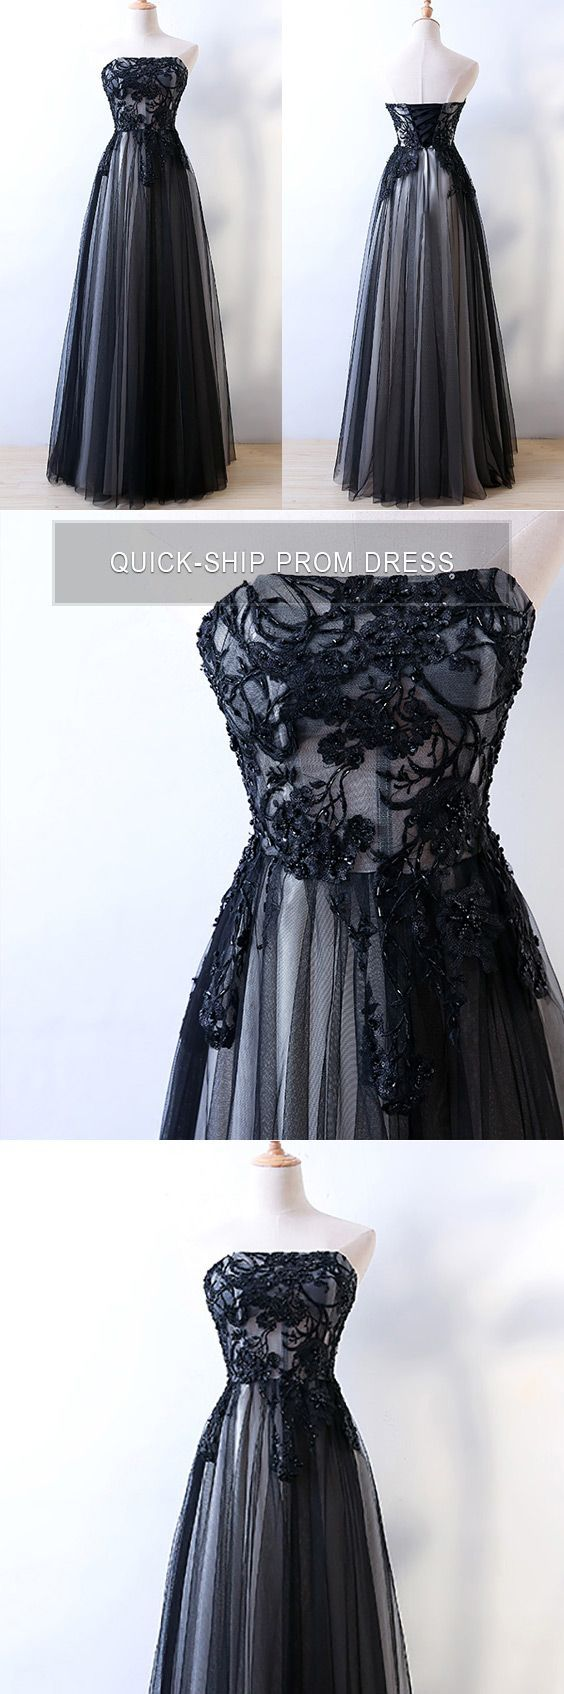 Strapless sheath long black prom formal dress with corset back